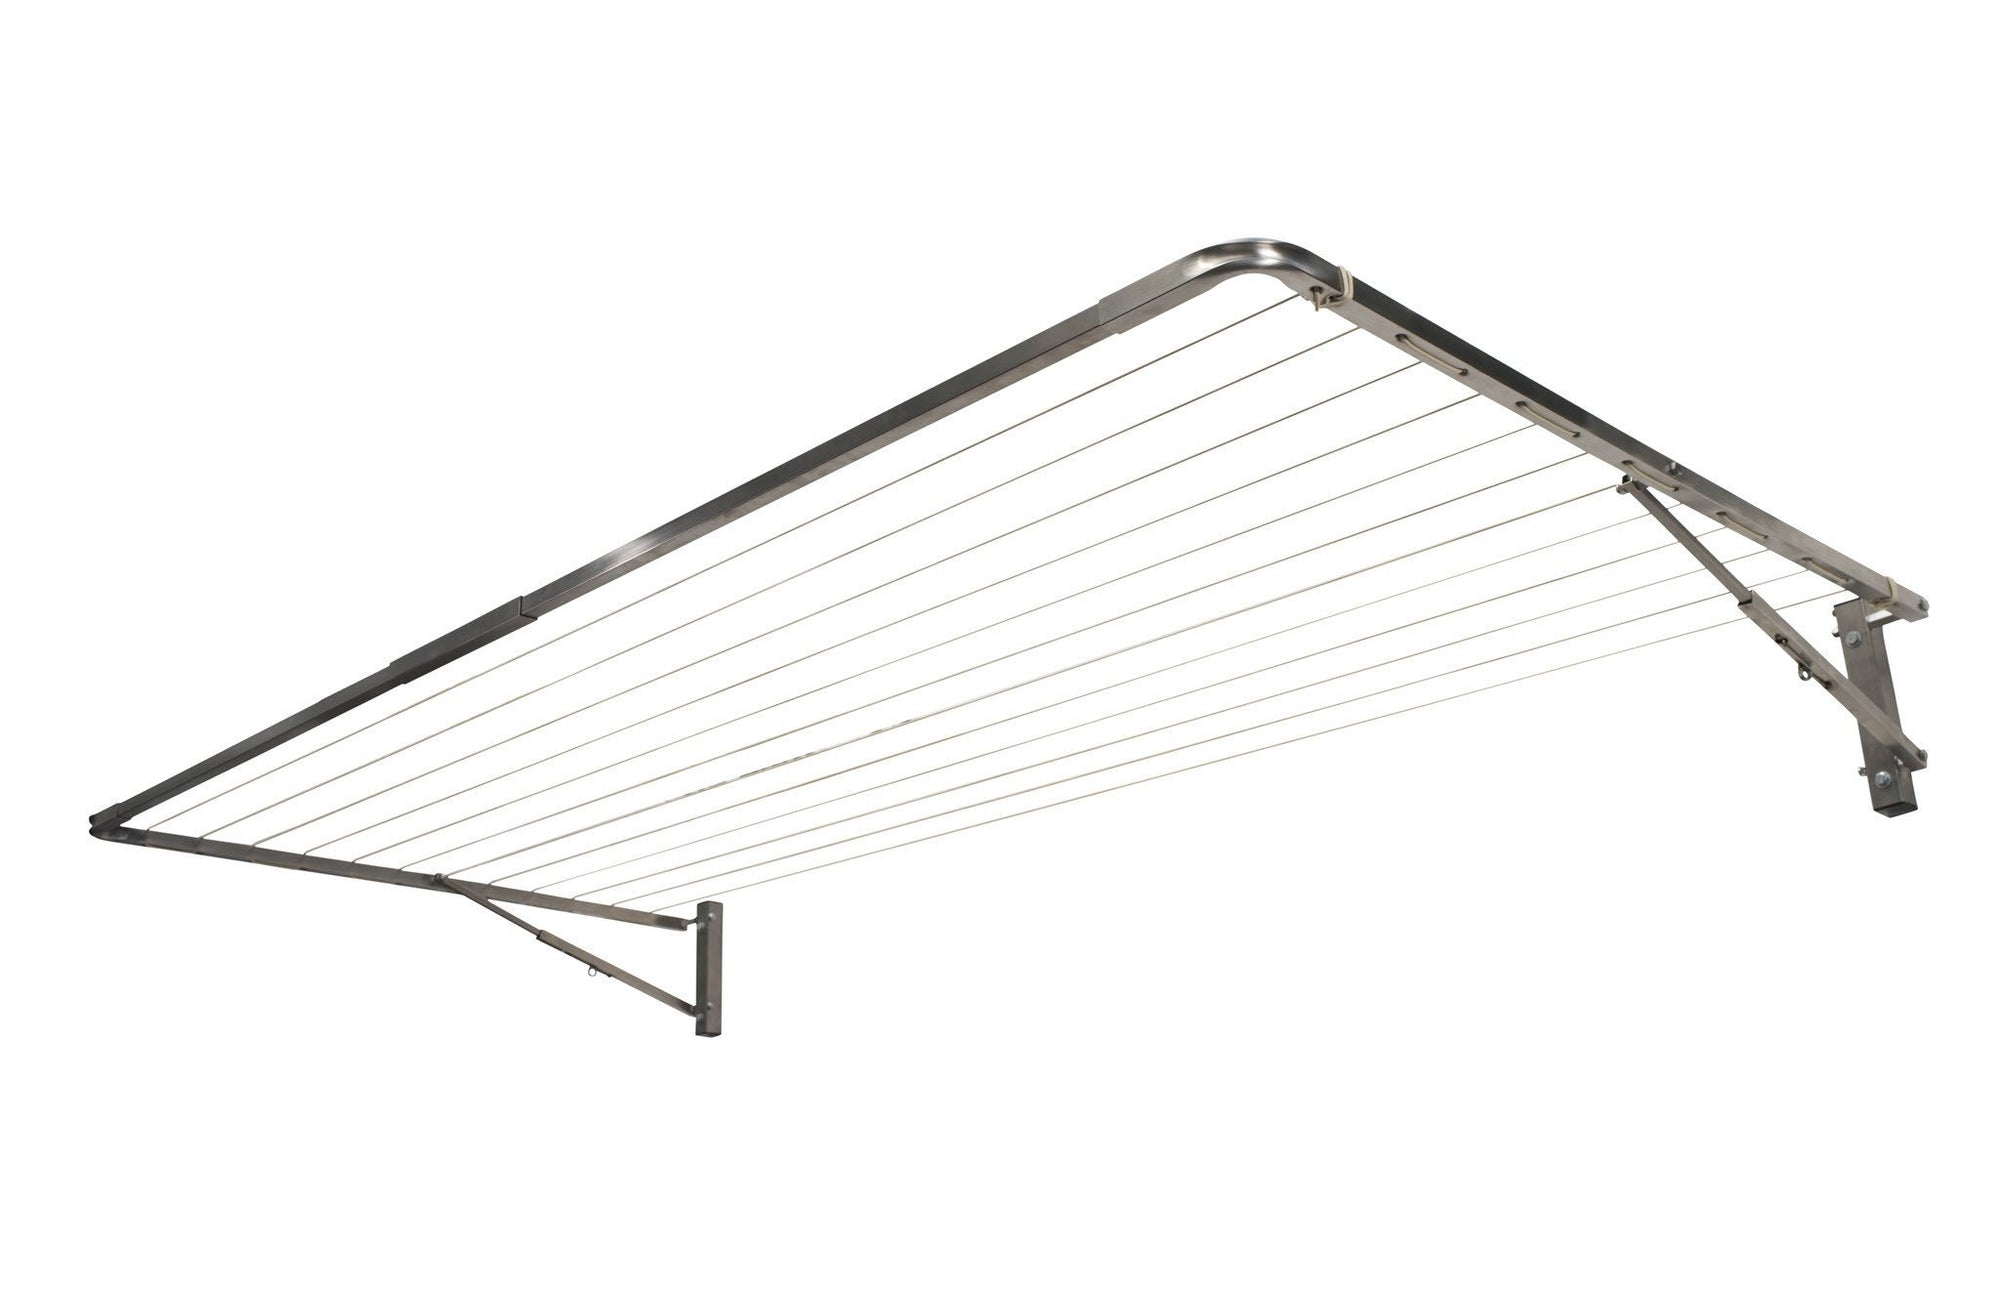 Eco 240 Stainless Steel Clothesline